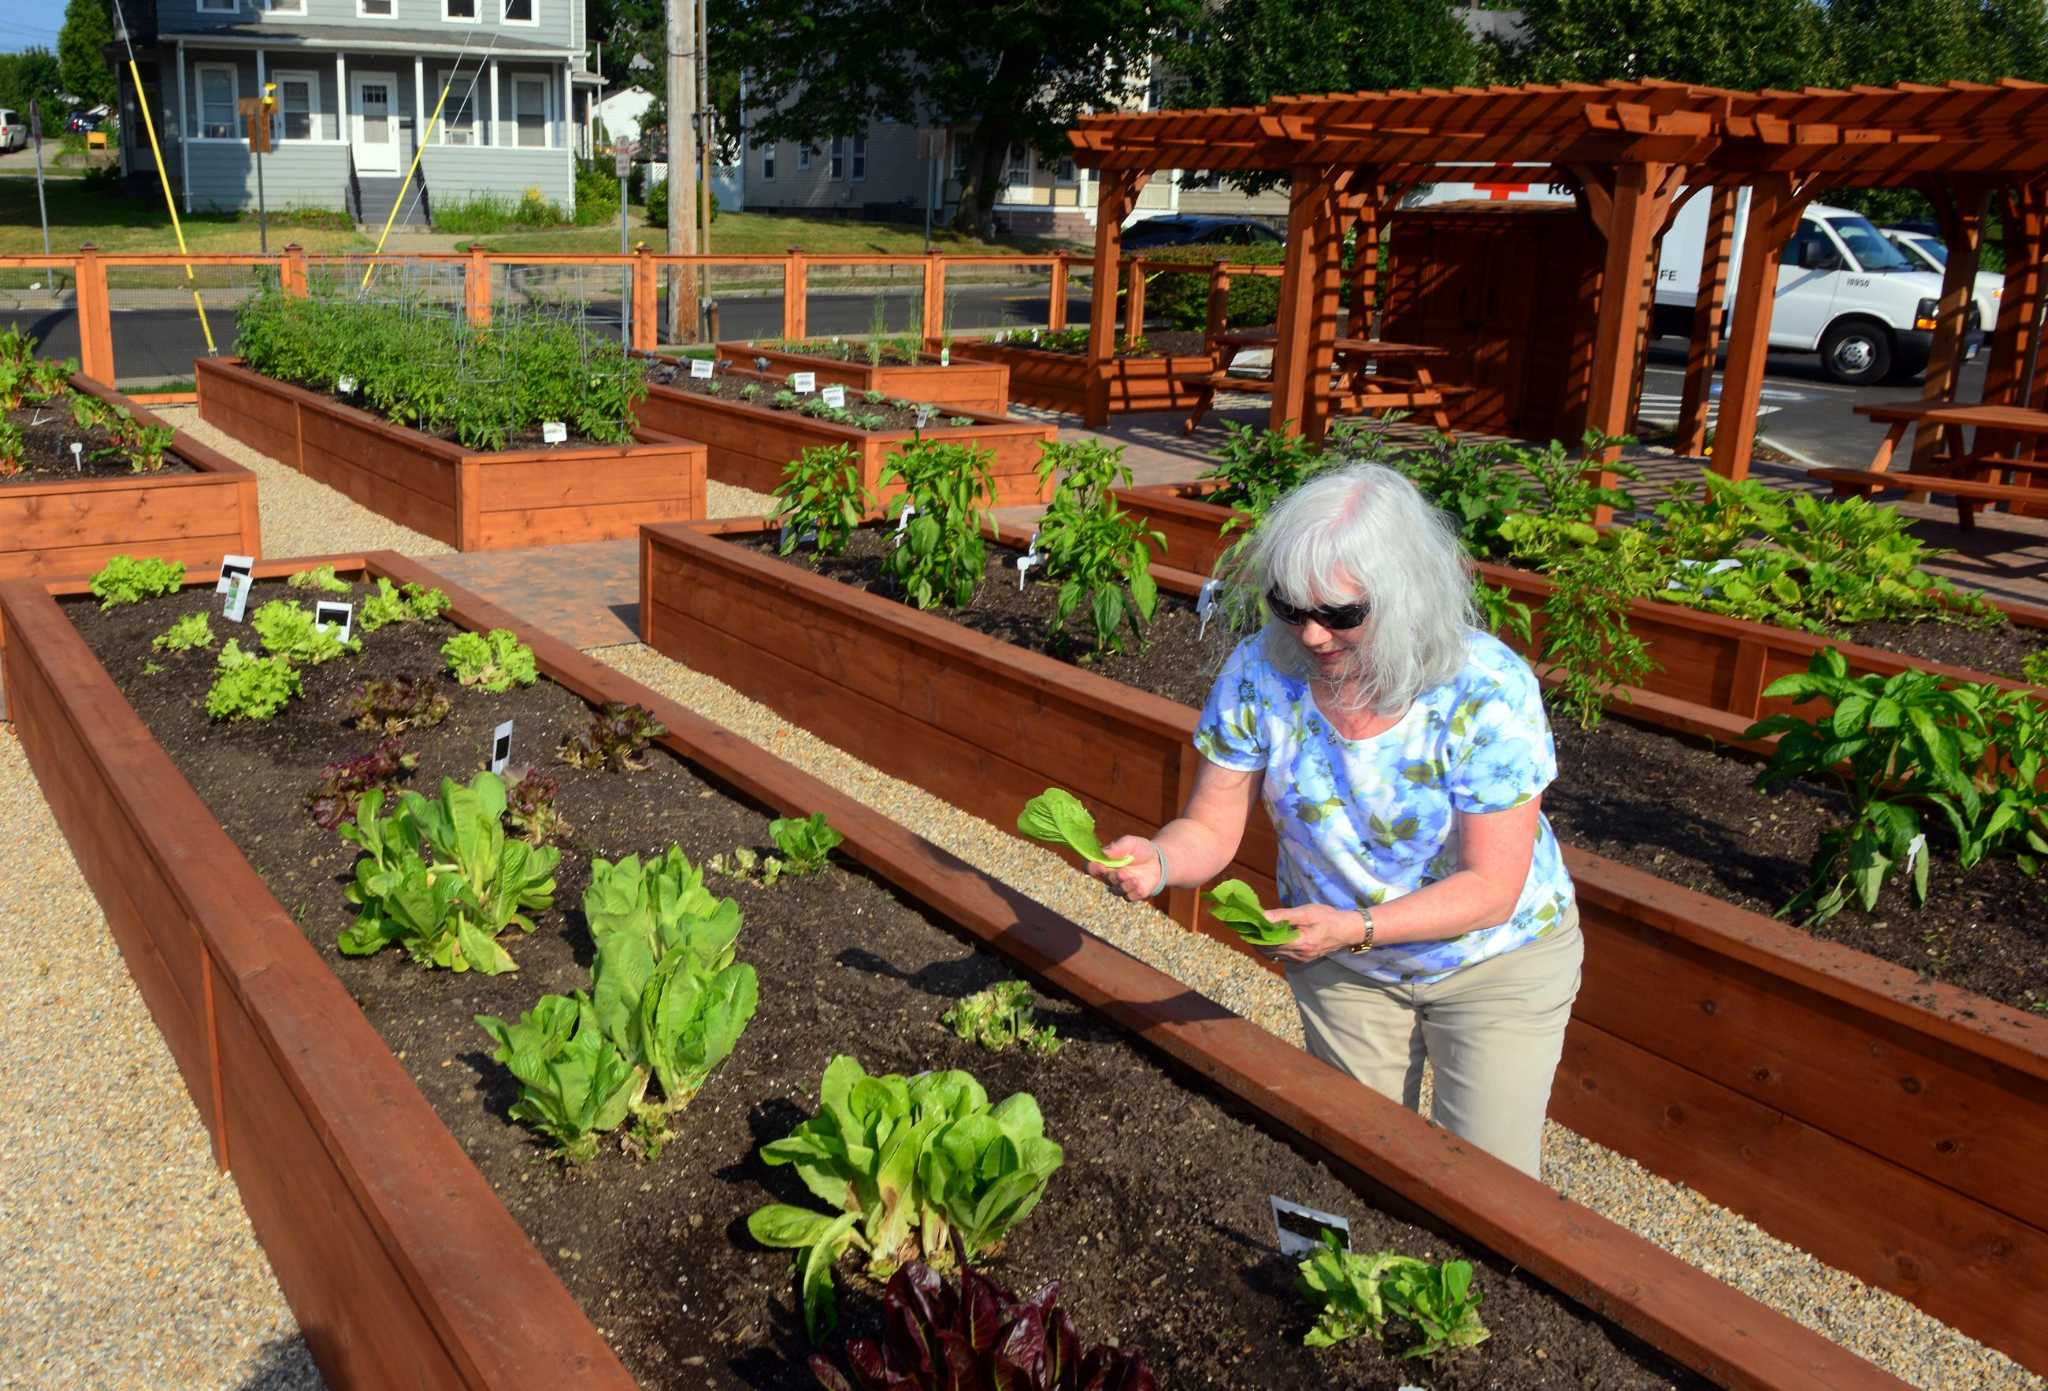 United Way S Community Gardens Fill Vacant Spots And